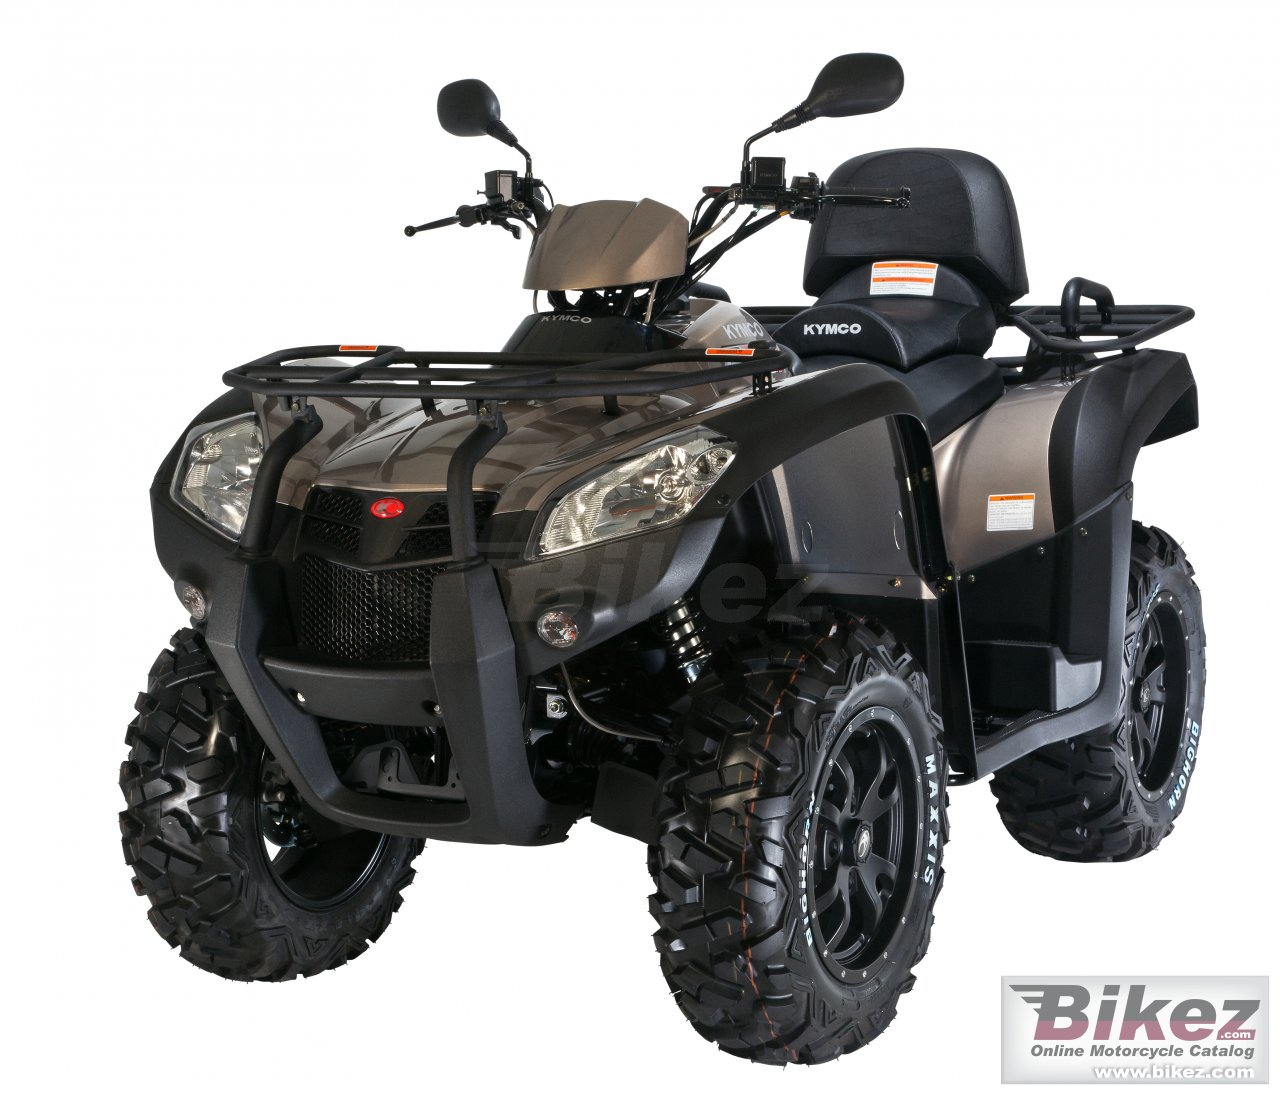 Big Kymco mxu500i dx picture and wallpaper from Bikez.com